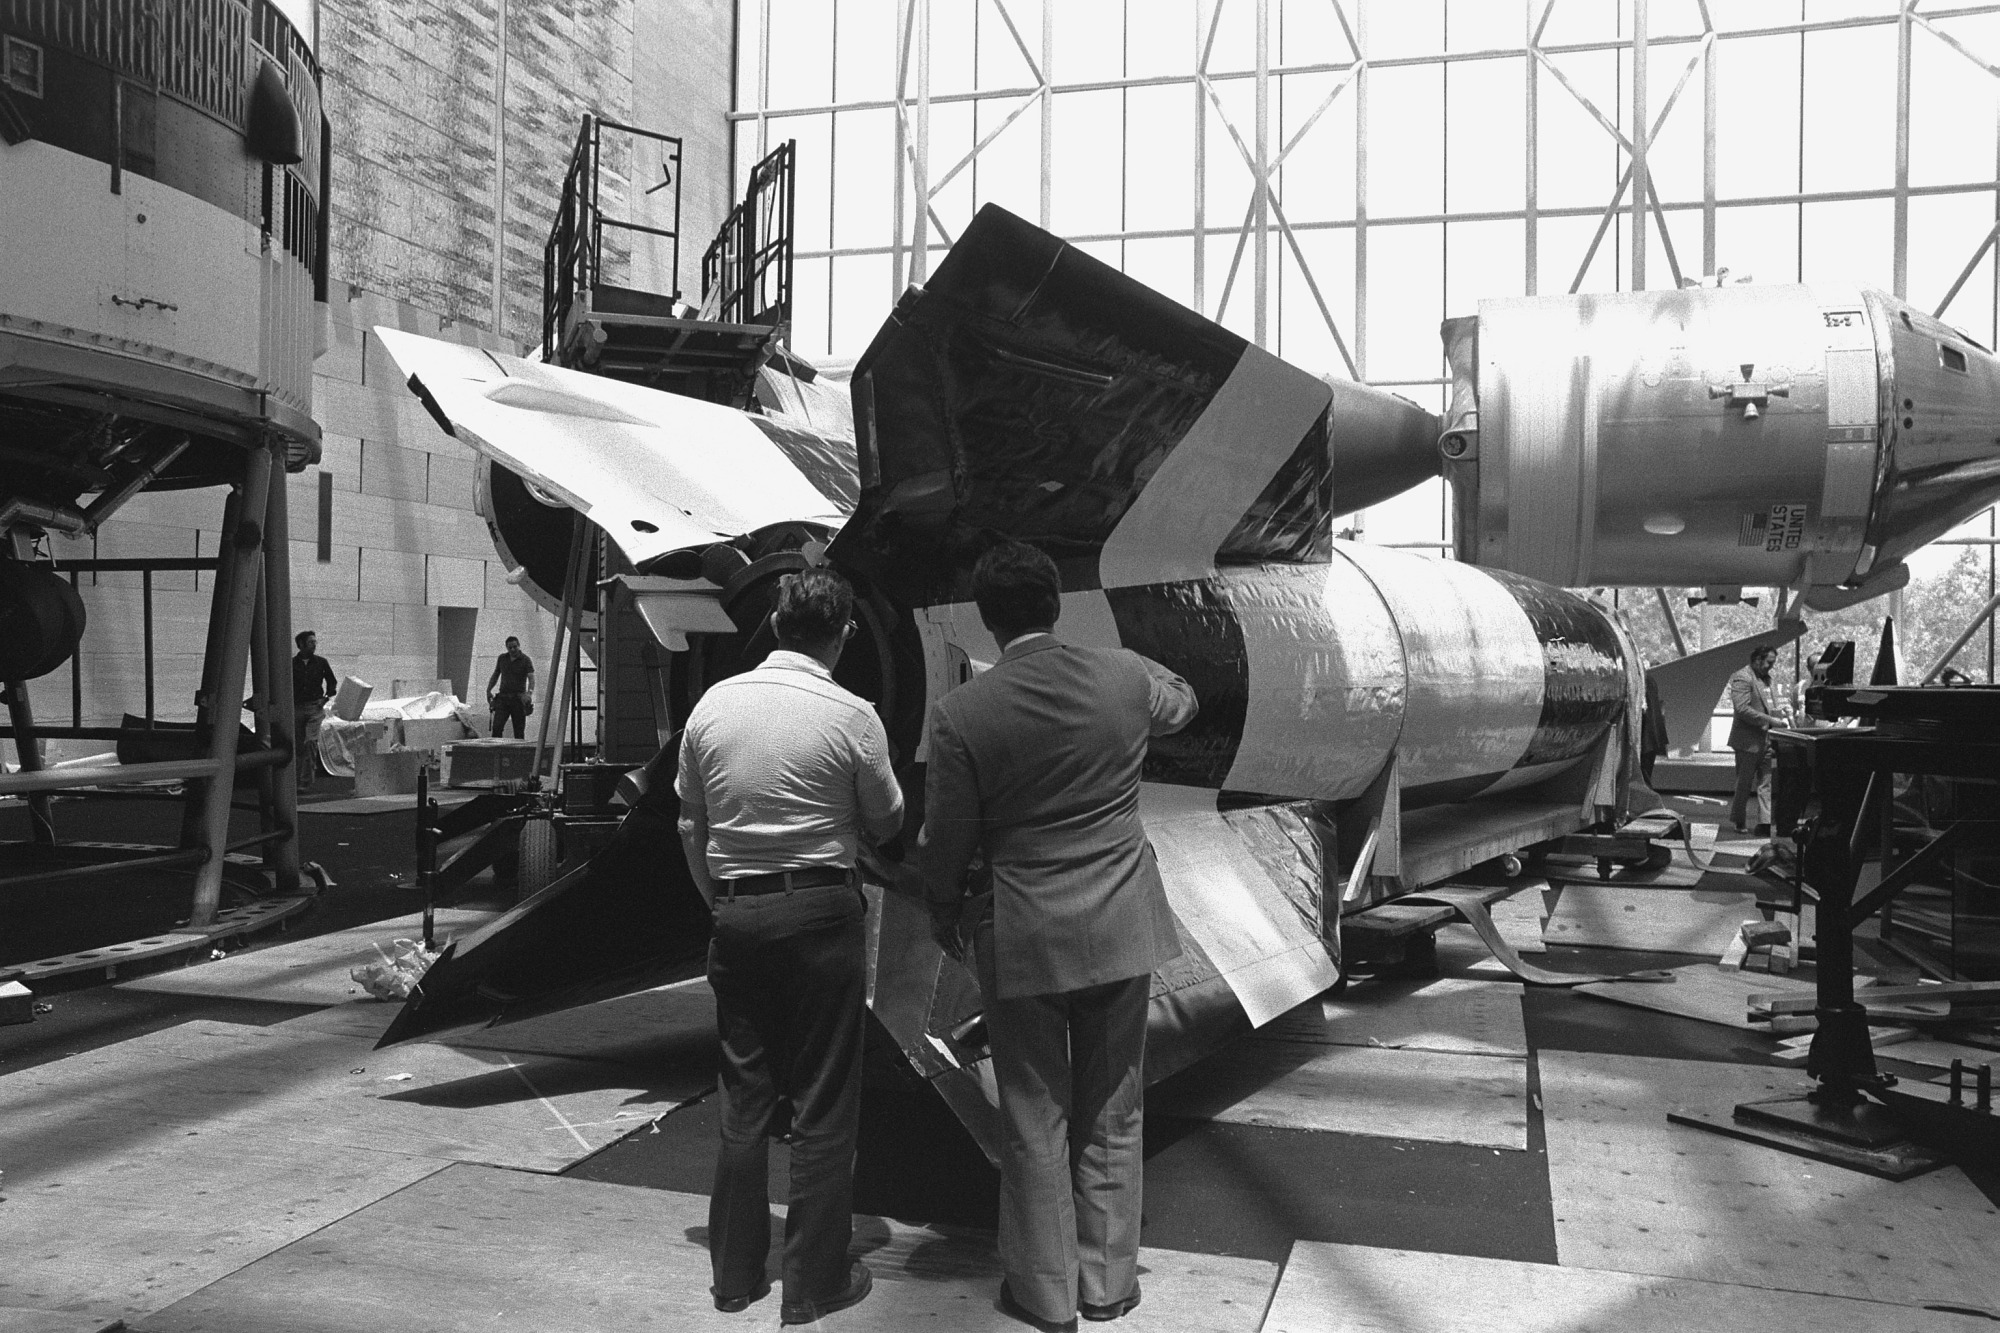 Installing Rocket in the NASM